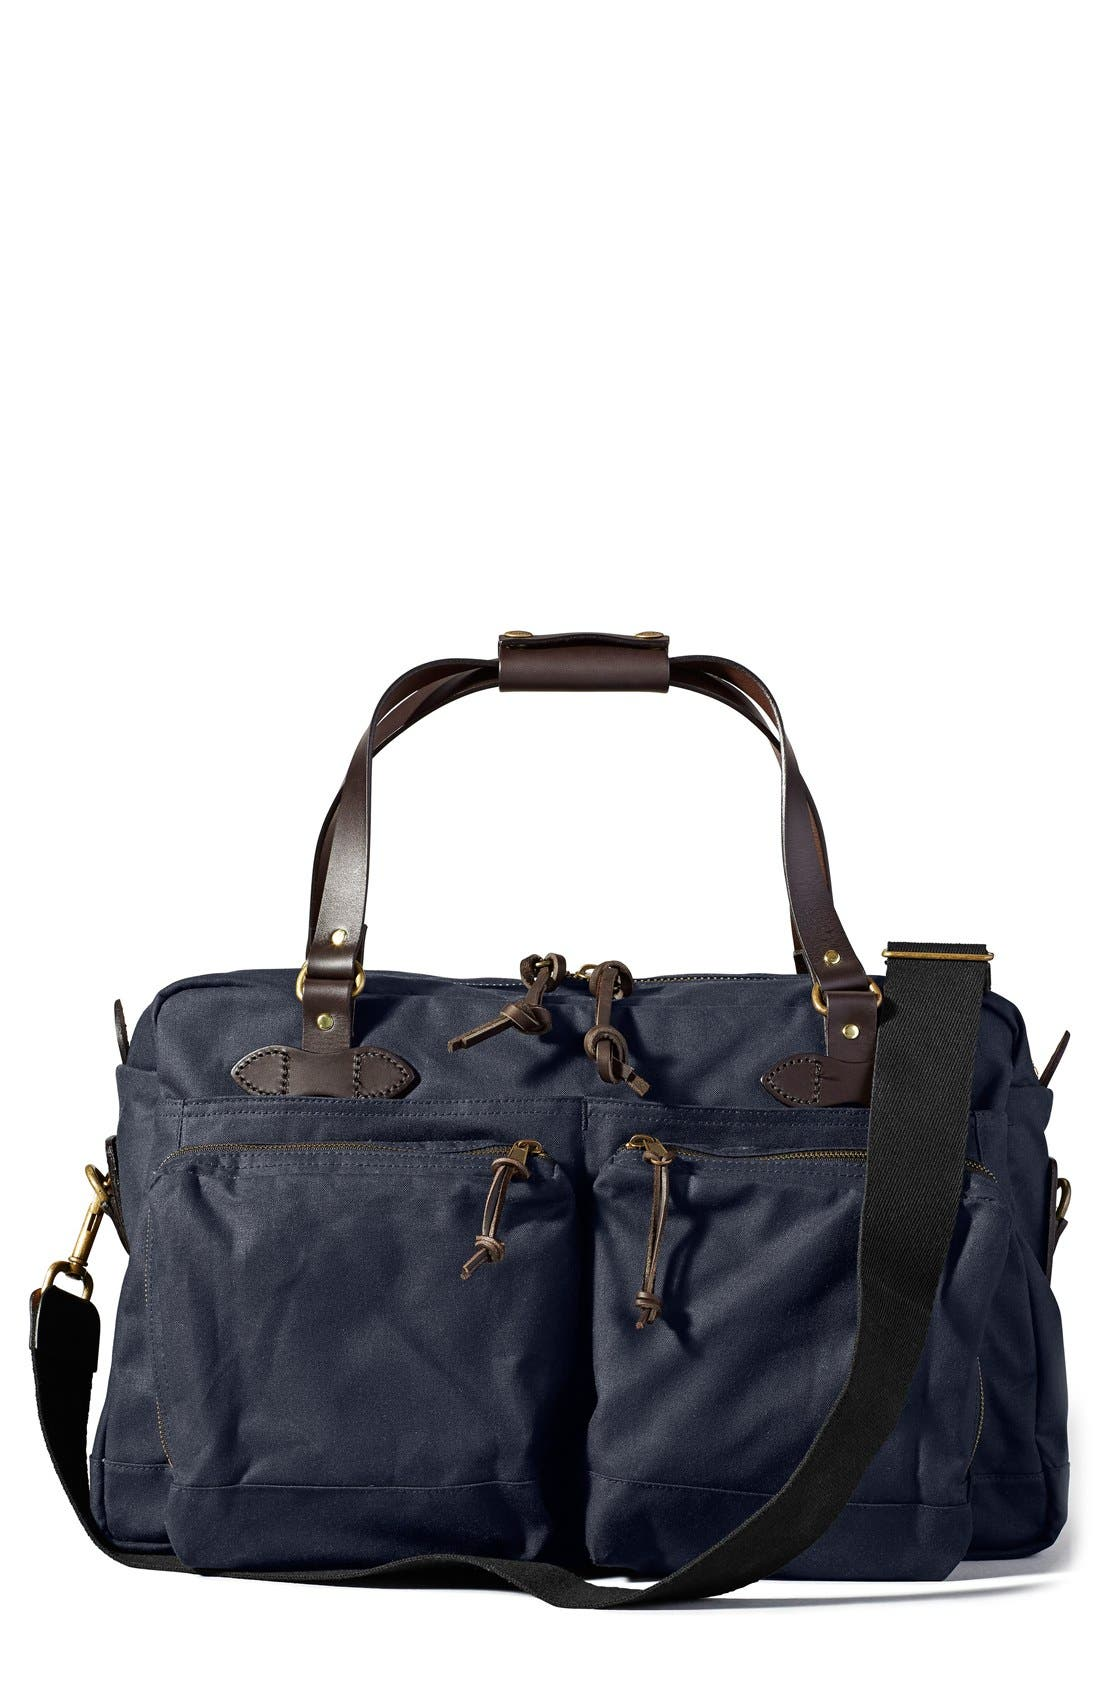 '48-Hour' Duffel Bag,                             Main thumbnail 1, color,                             Navy